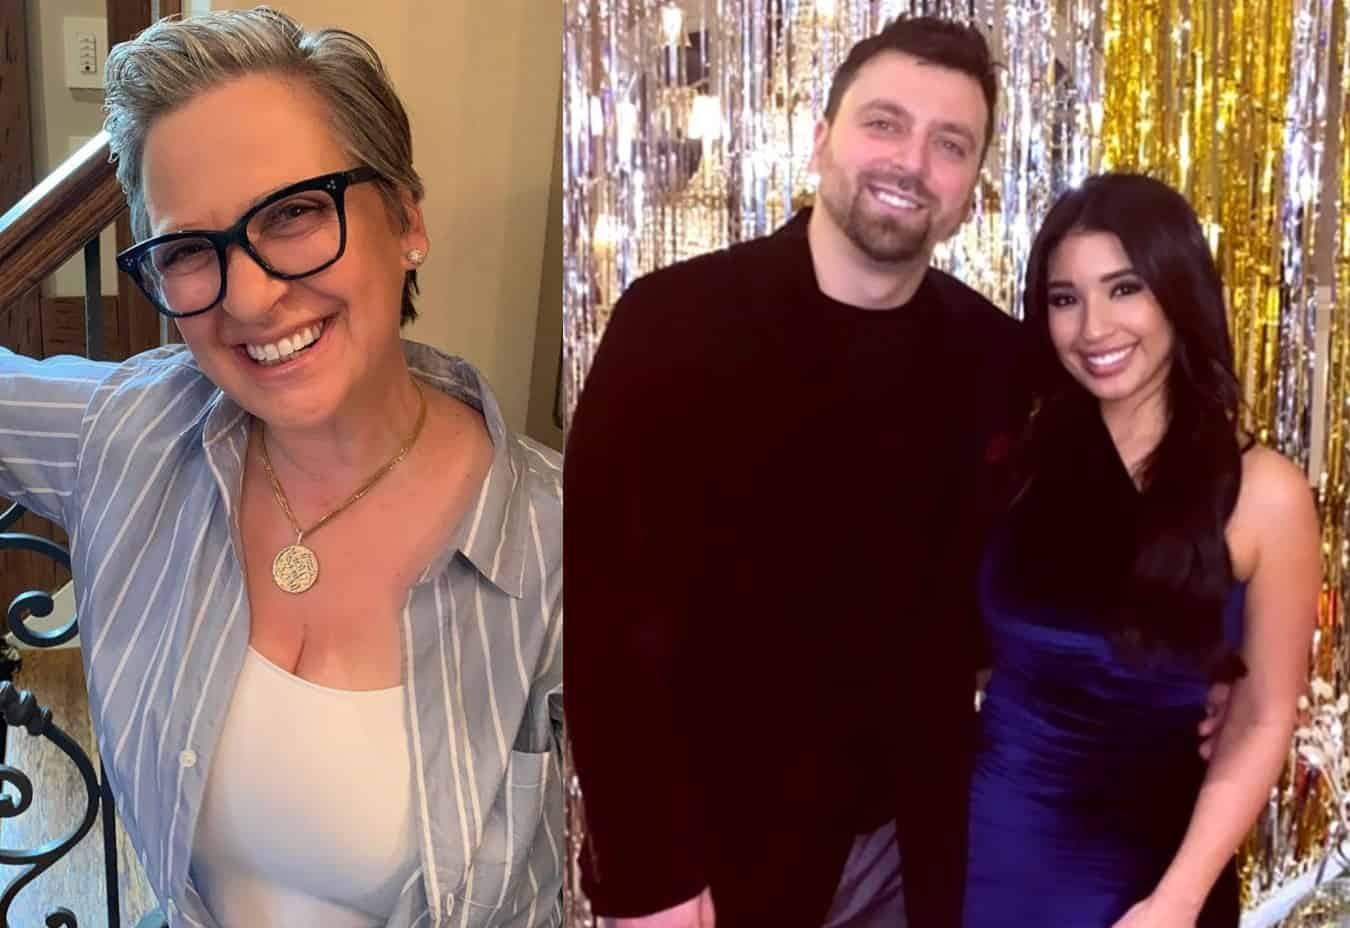 PHOTOS: RHONJ Alum Caroline Introduces Son Chris Manzo's Girlfriend Cassandra Cortez, Plus Photo of Chris's New Home as They Move in Together, and Albie Manzo's Girlfriend!